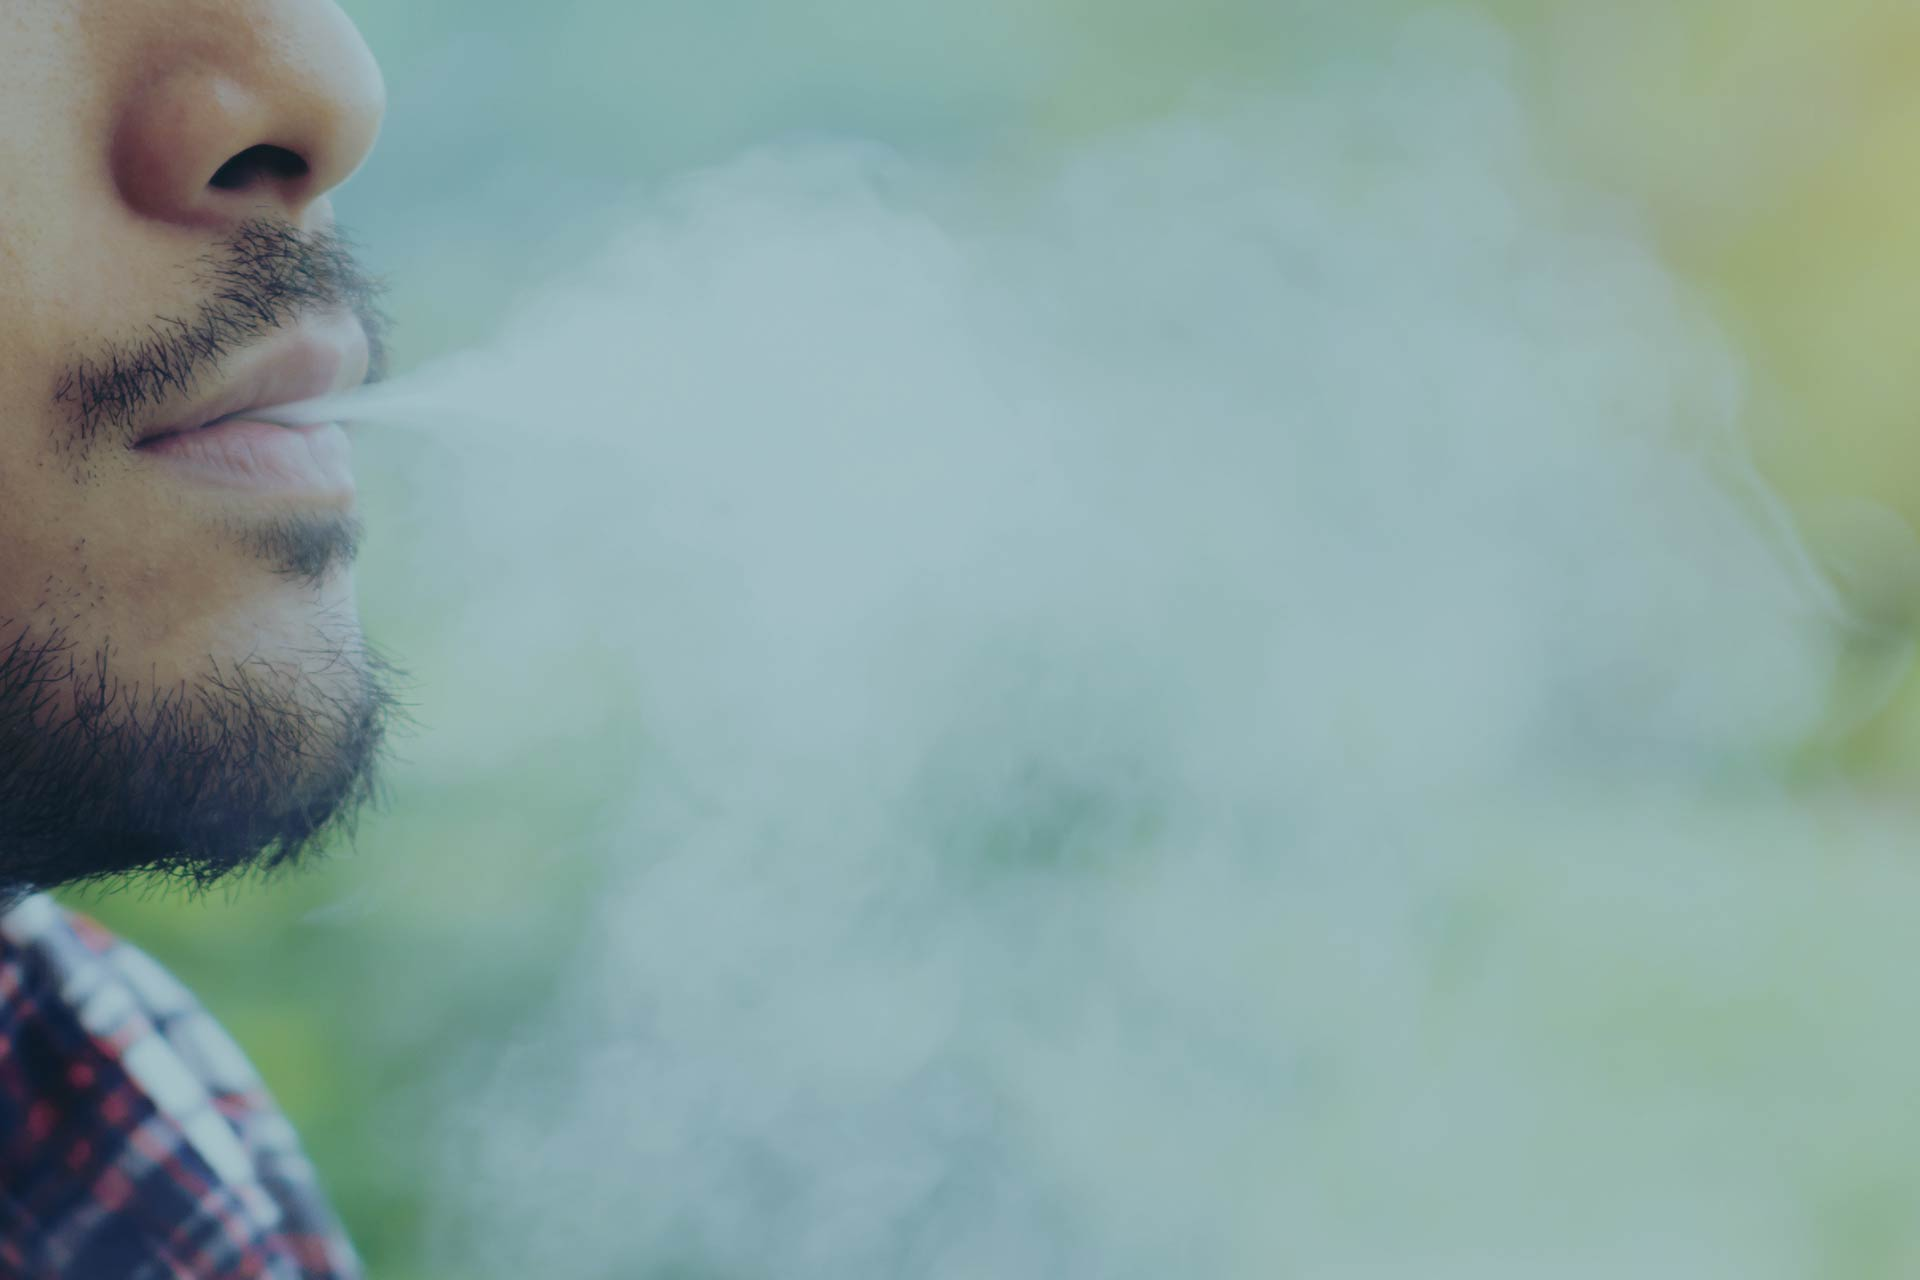 Consuming Cannabis: Vaping and Home-Grown Weed